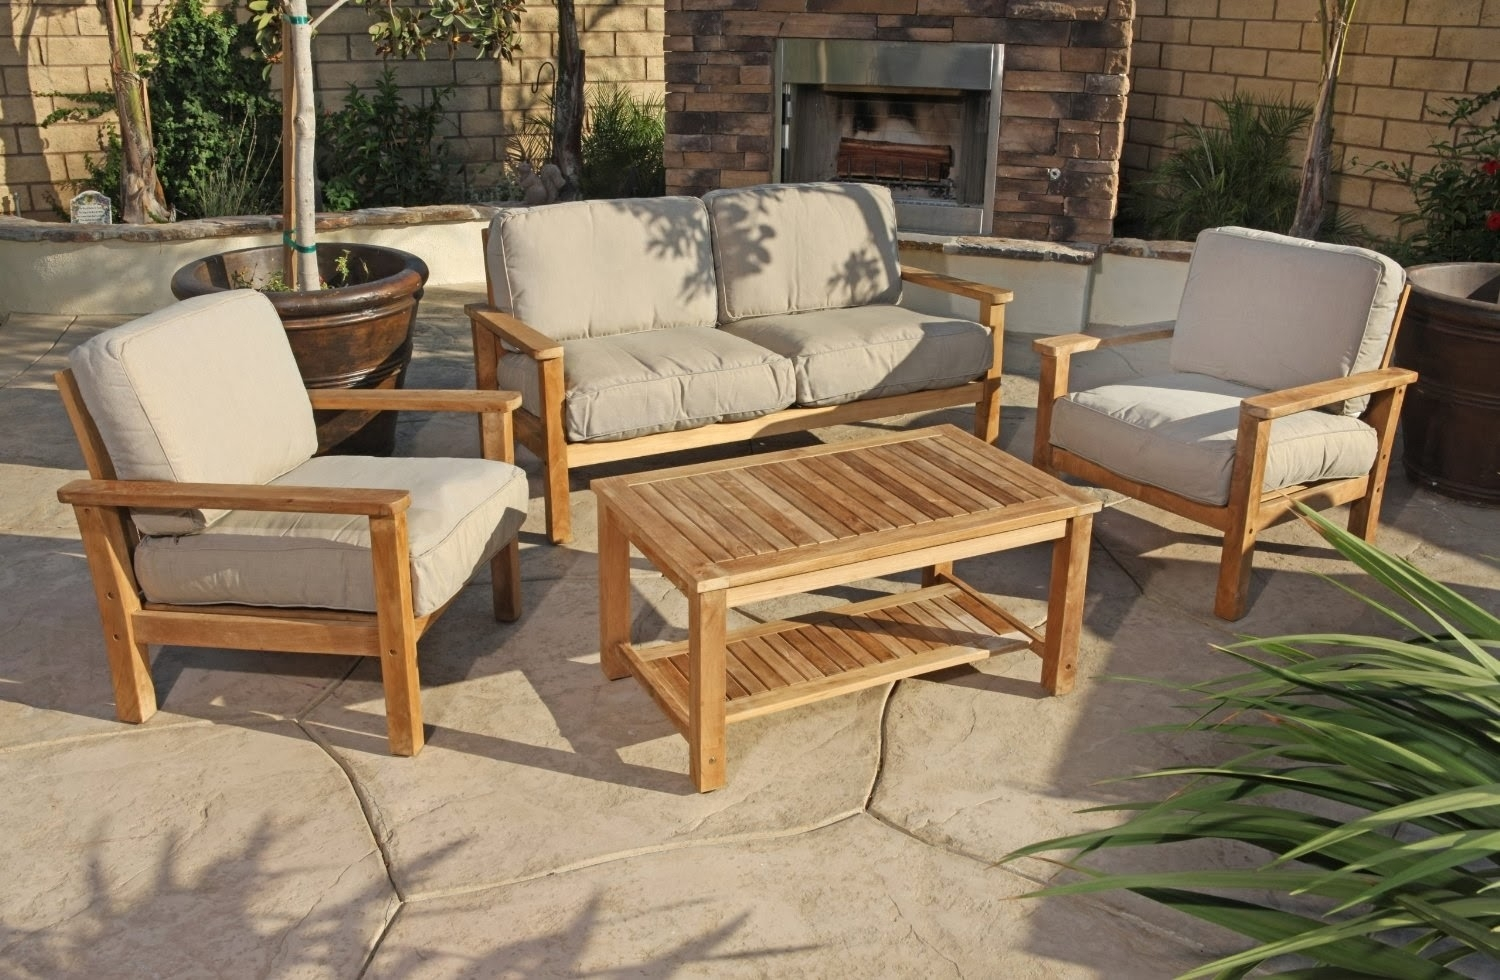 Image of: Outdoor Teak Patio Furniture Teak Wood Outdoor Furniture Homeblu In Outdoor Teak Wood Furniture Ways To Keep Outdoor Teak Wood Furniture